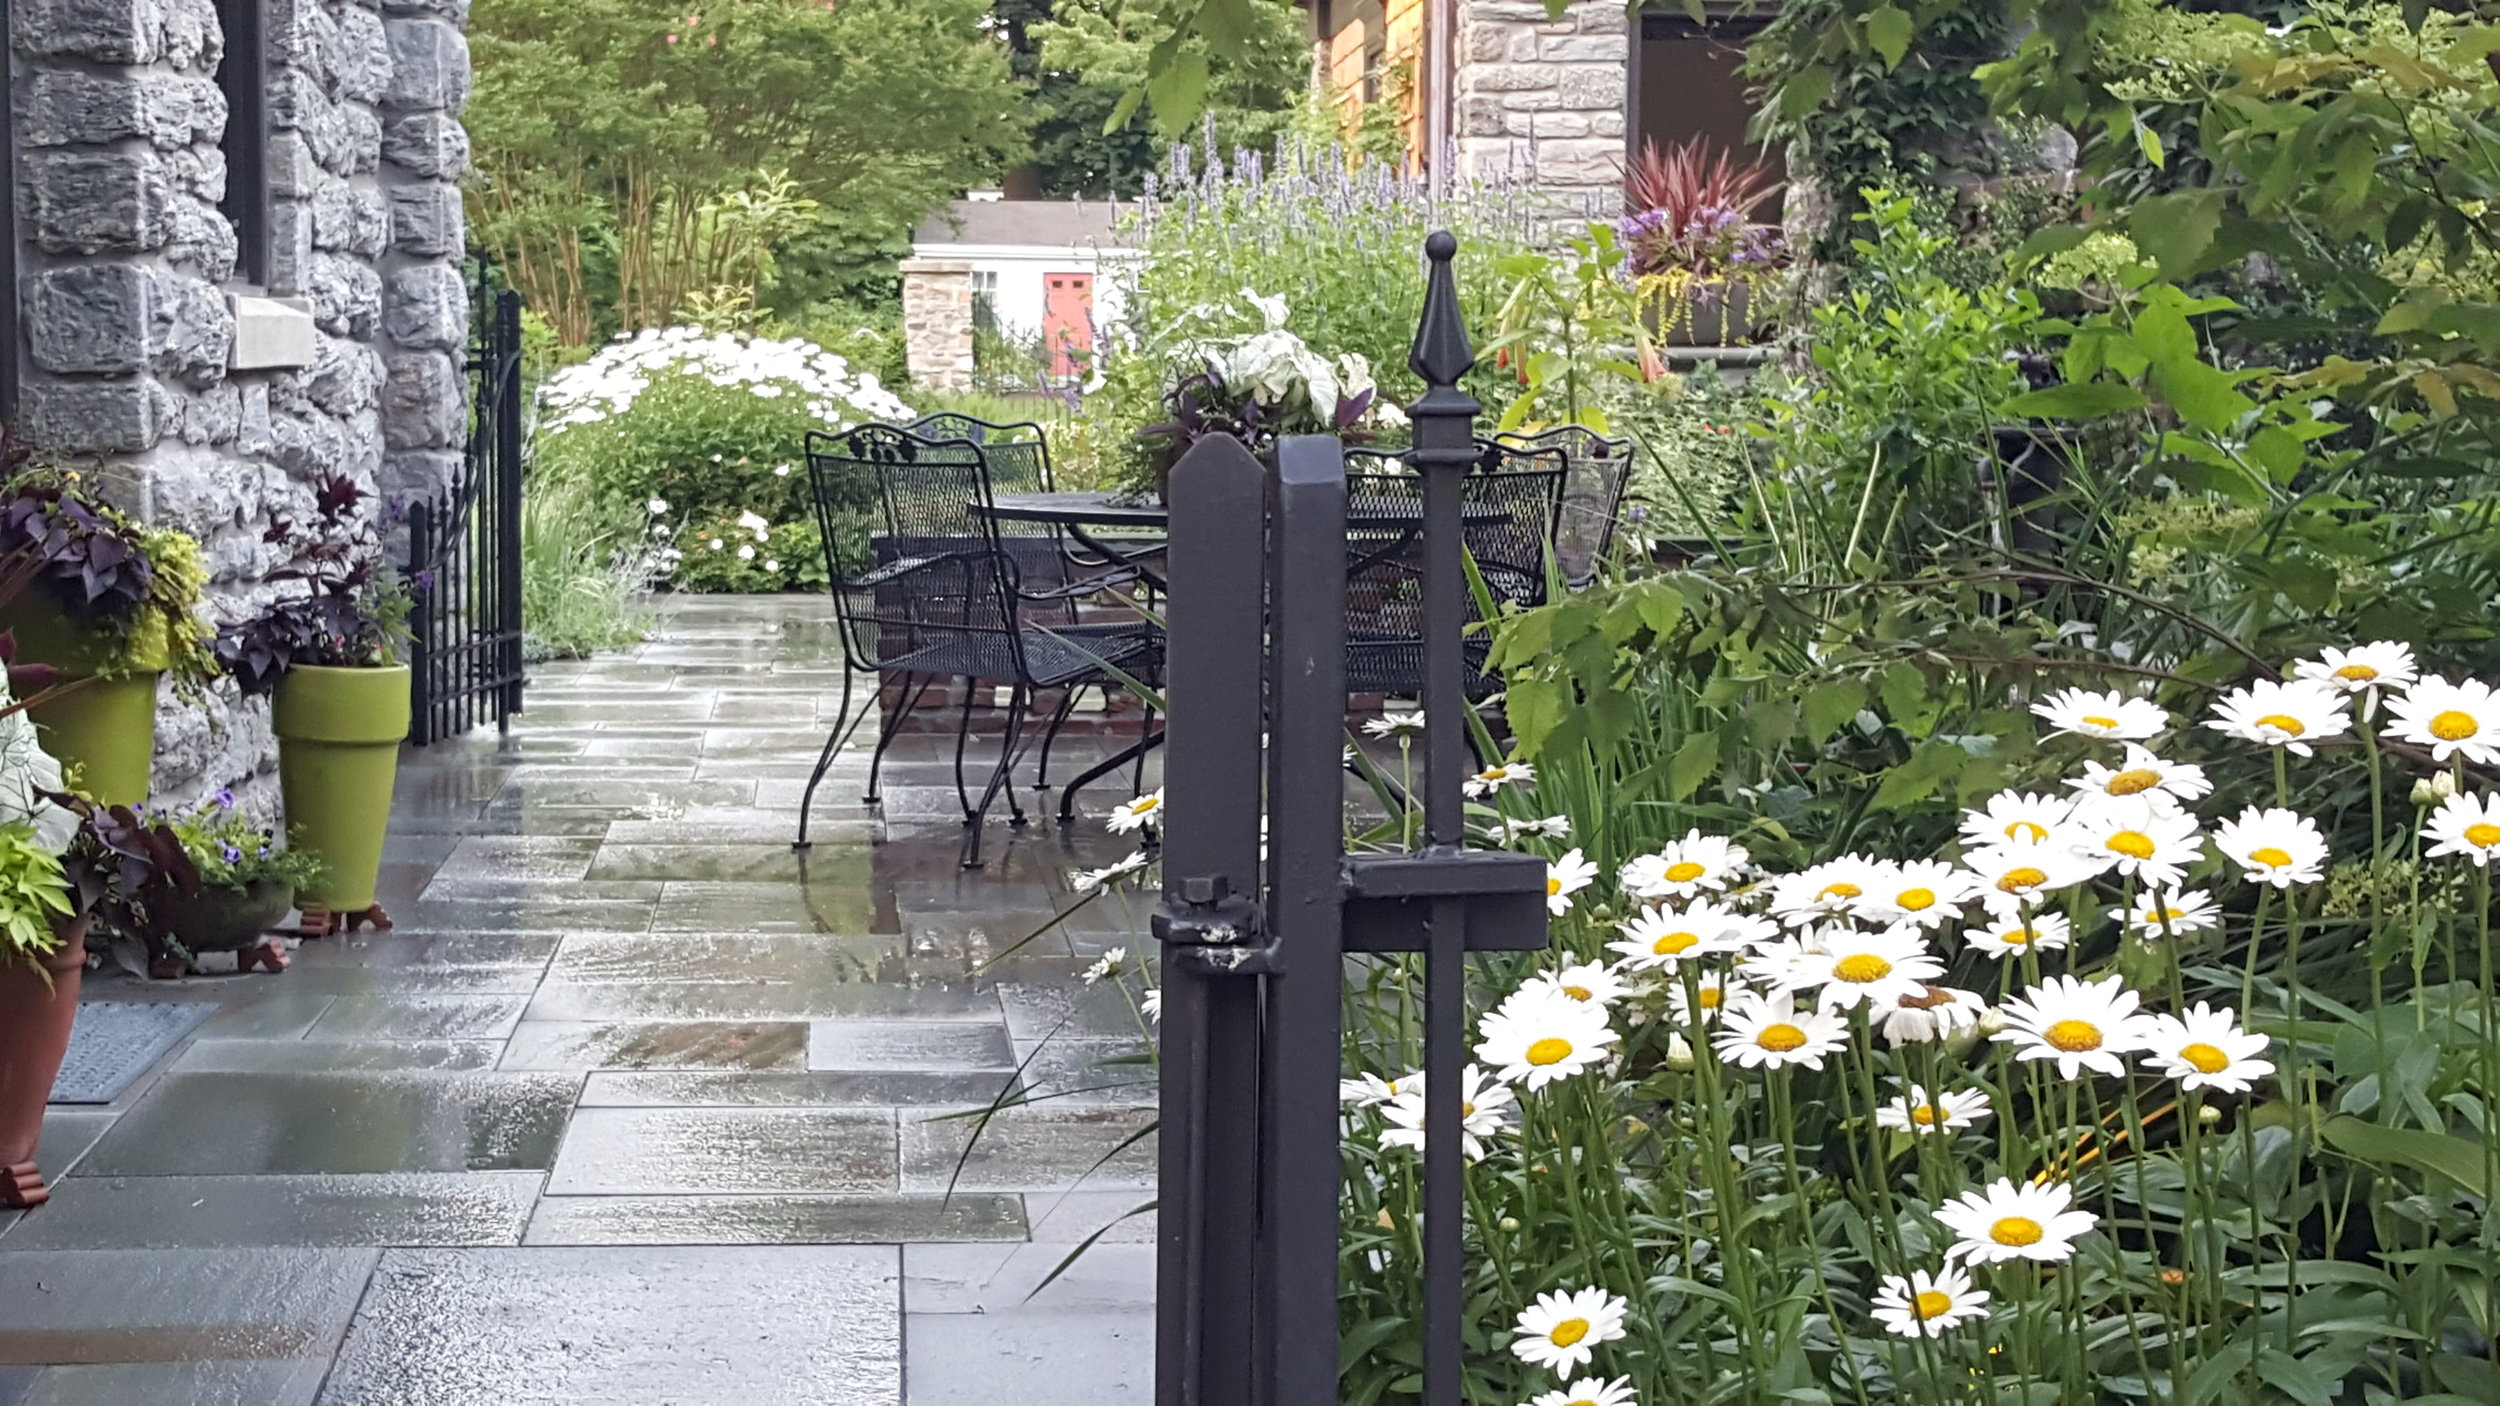 Design   Philadelphia Gardens has the sharpest landscape architects in the city. We provide expert insight and design knowledge to help make your yard, regardless of size, a tranquil scene of native plants and animals that you look forward to seeing every day.